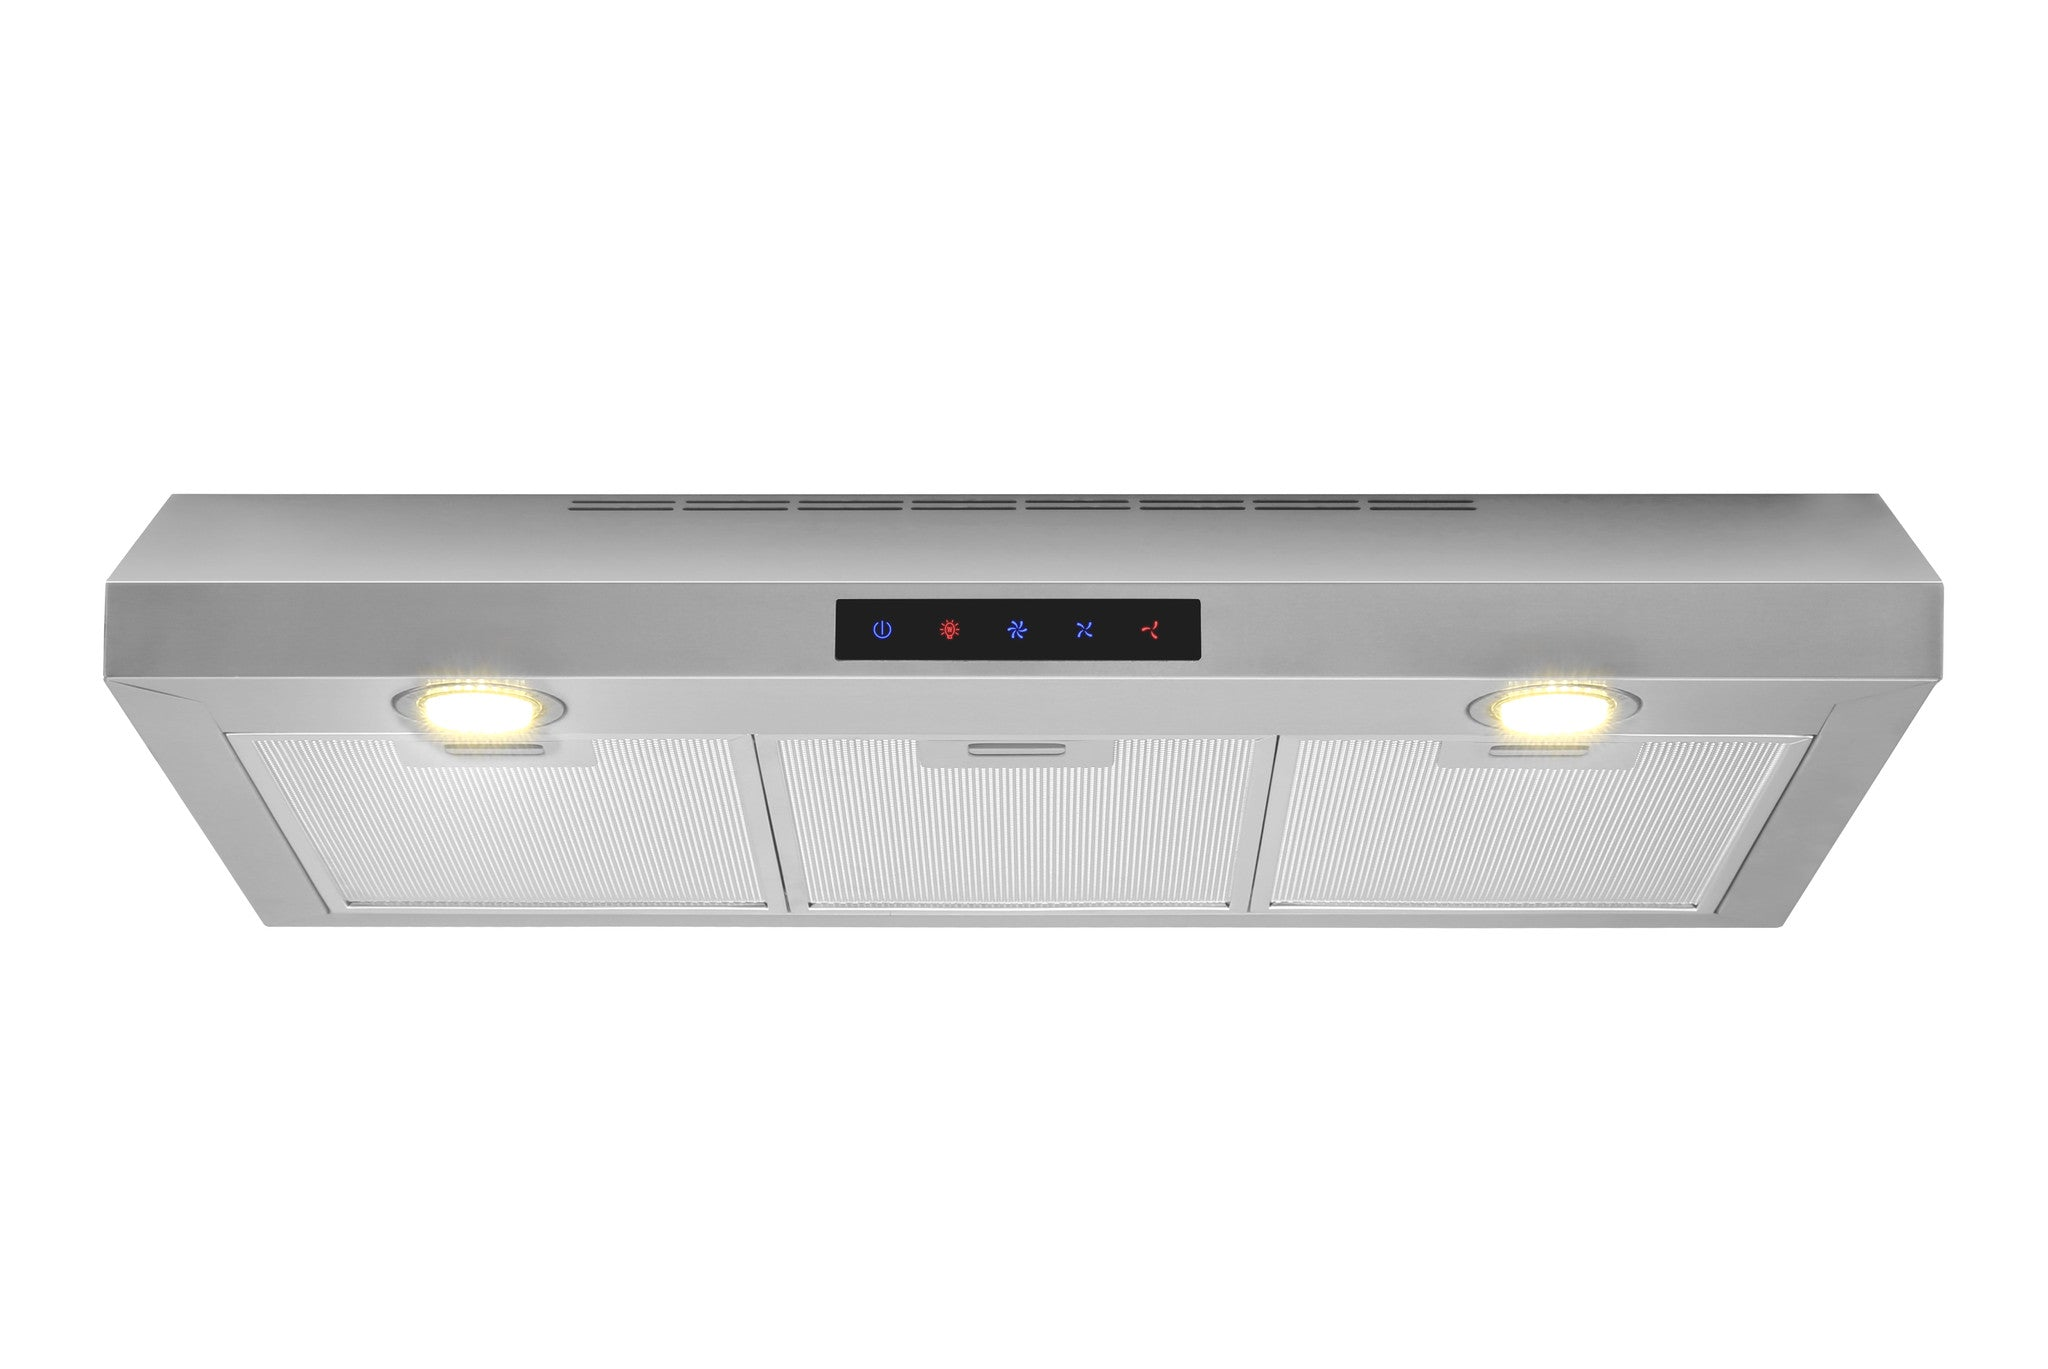 30-inch Stainless Steel Under-Cabinet Range Hood (Model WUC75-LED)